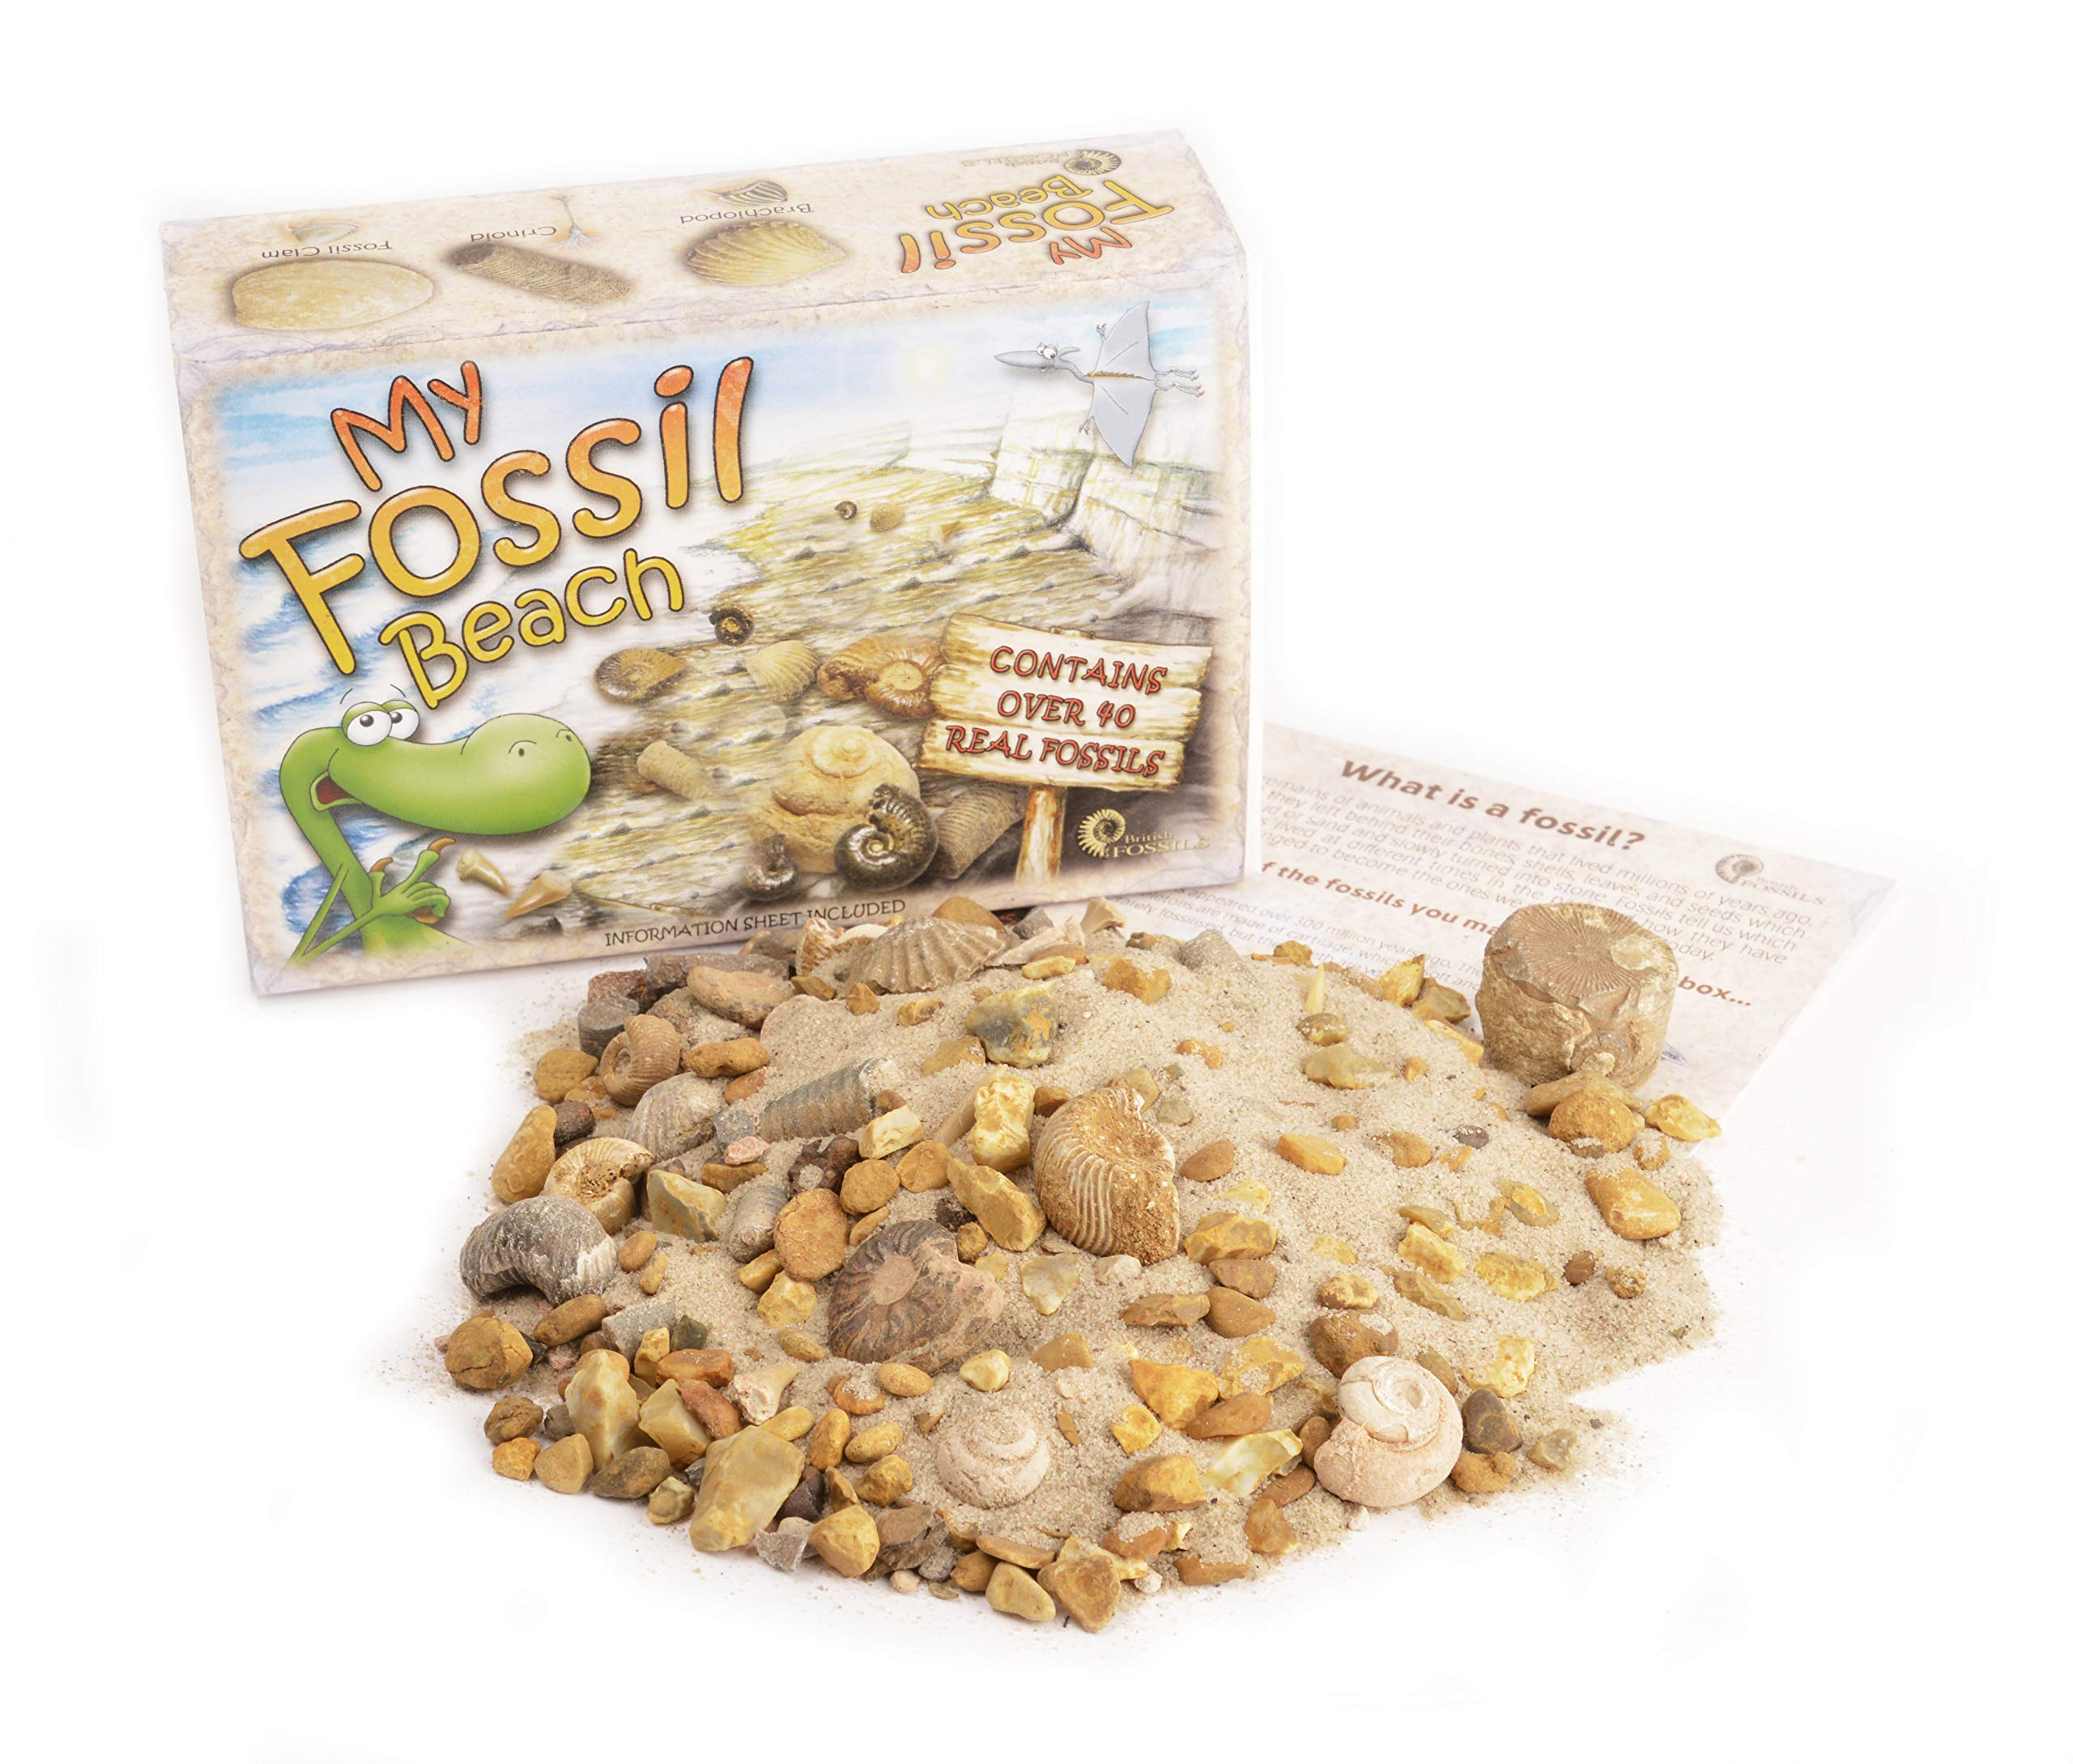 My Fossil Beach - Contains Over 40 Genuine Fossils!